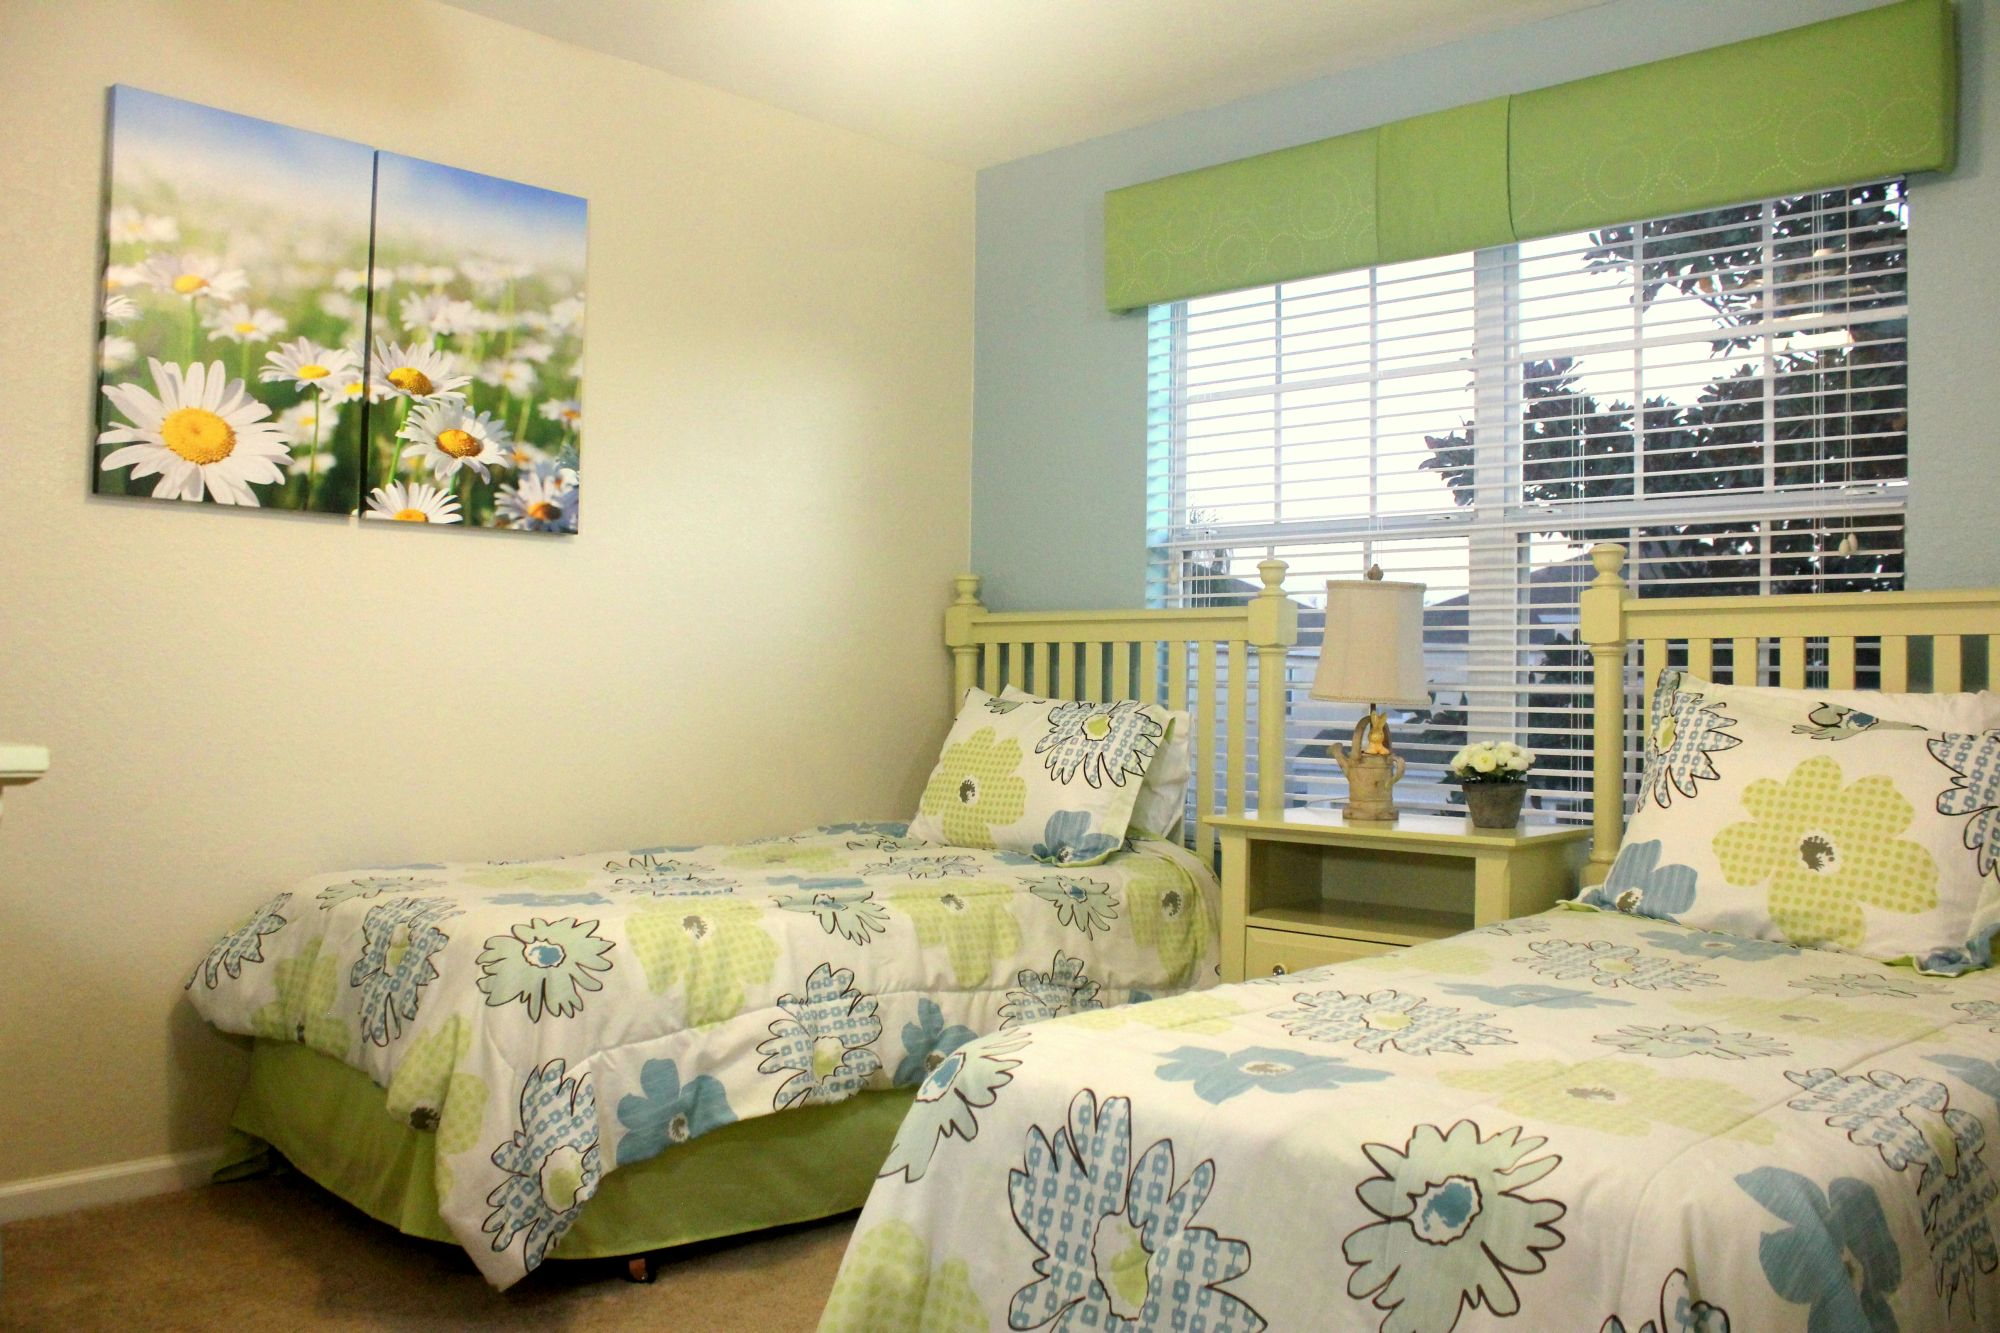 Second Floor Flower Room (Double Twin Beds)